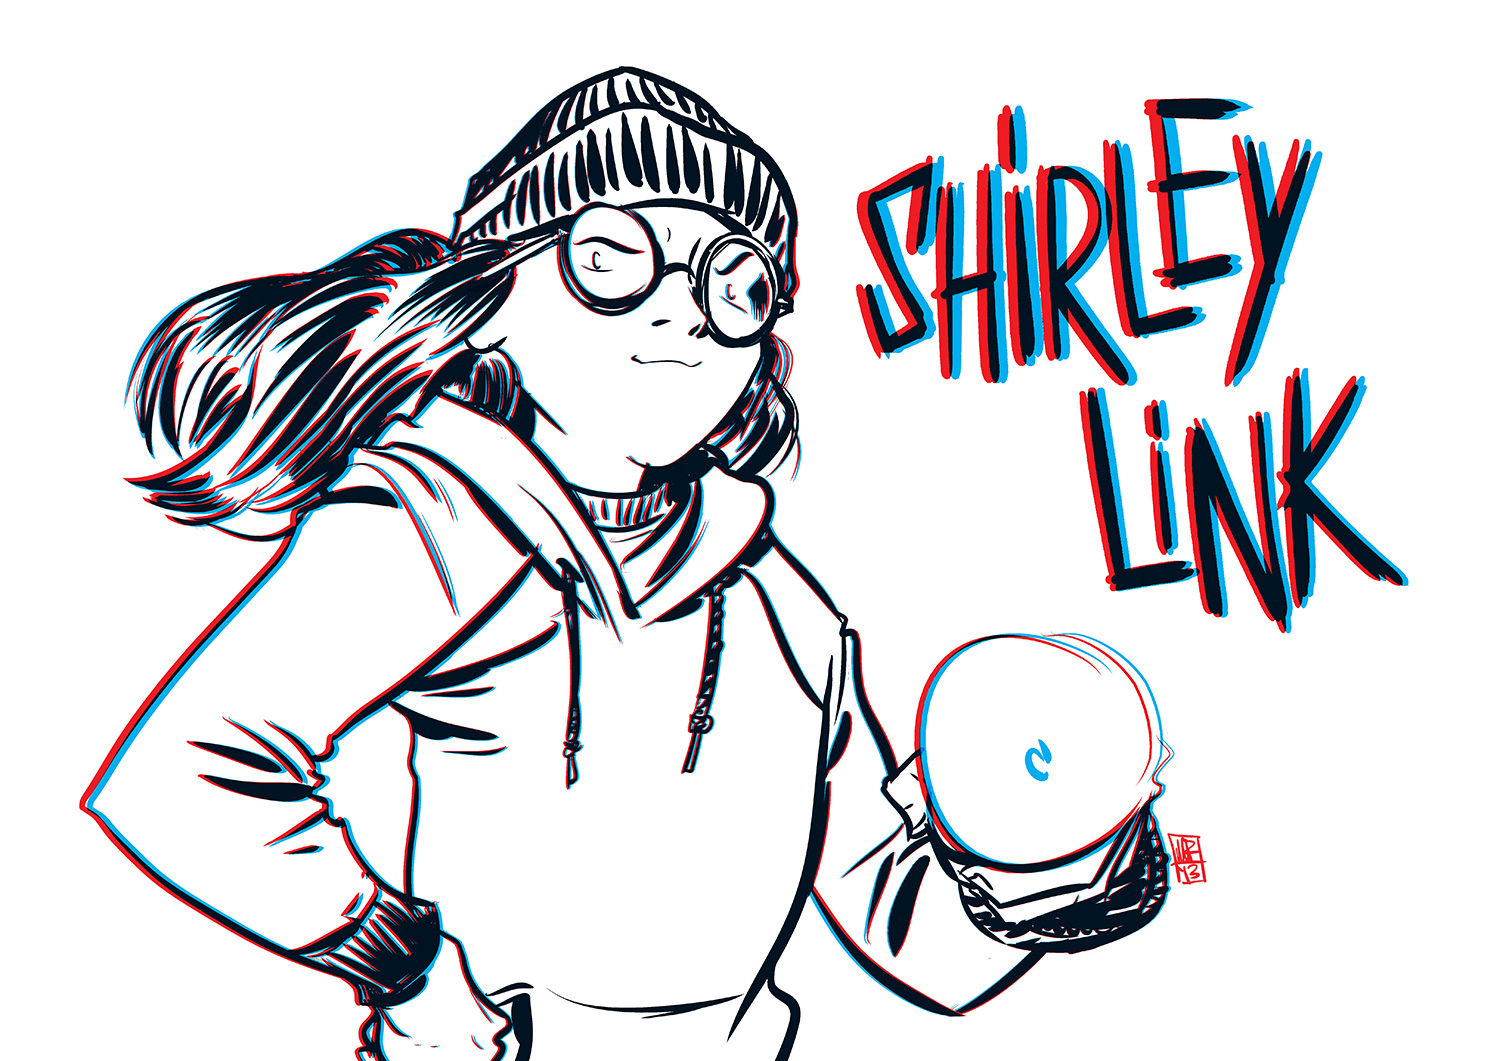 Enter the BookElves Anthology giveaway and read the latest Shirley Link!